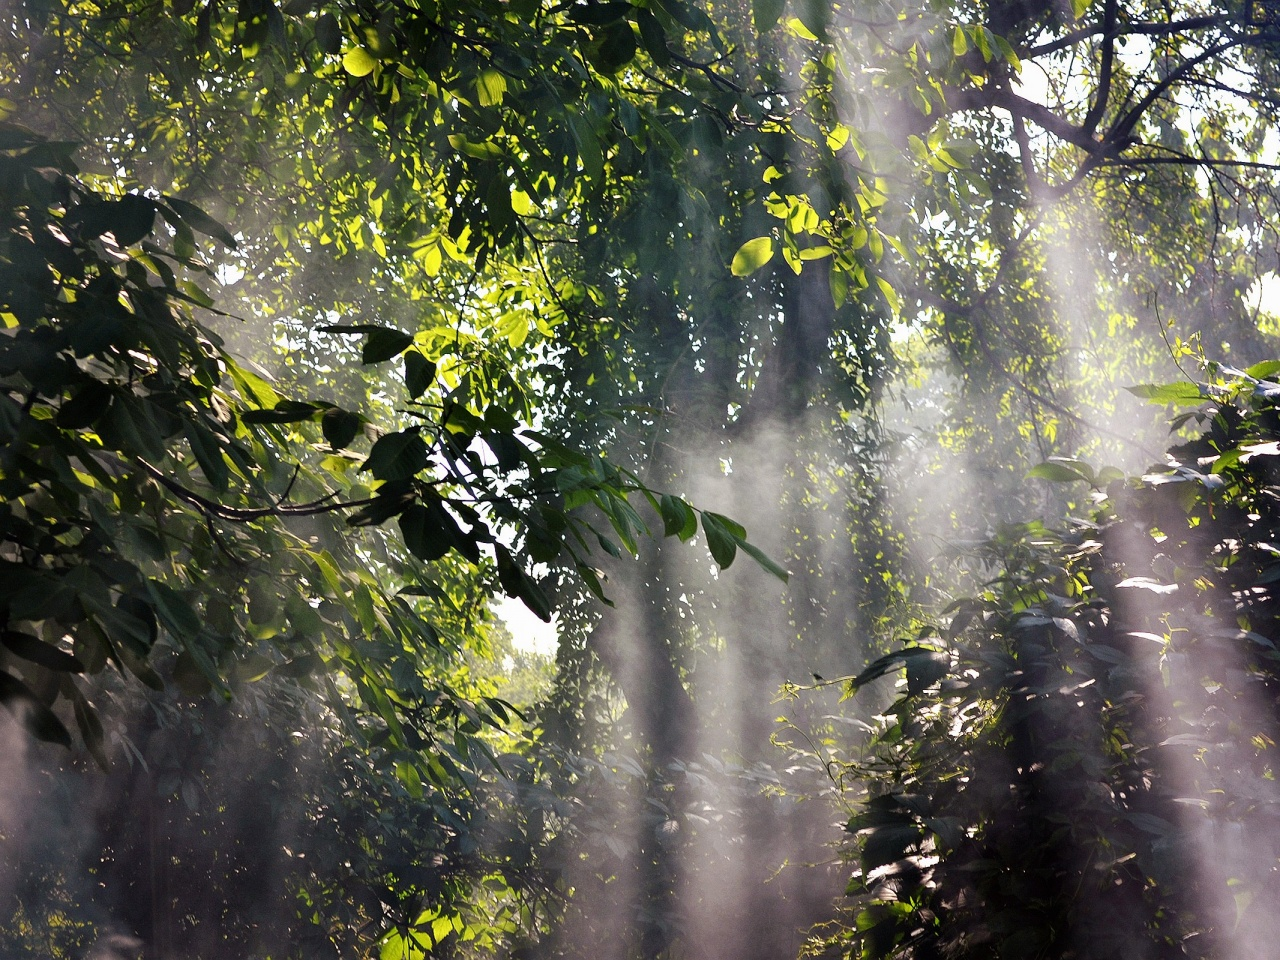 Foggy-Rainforest-1280x960